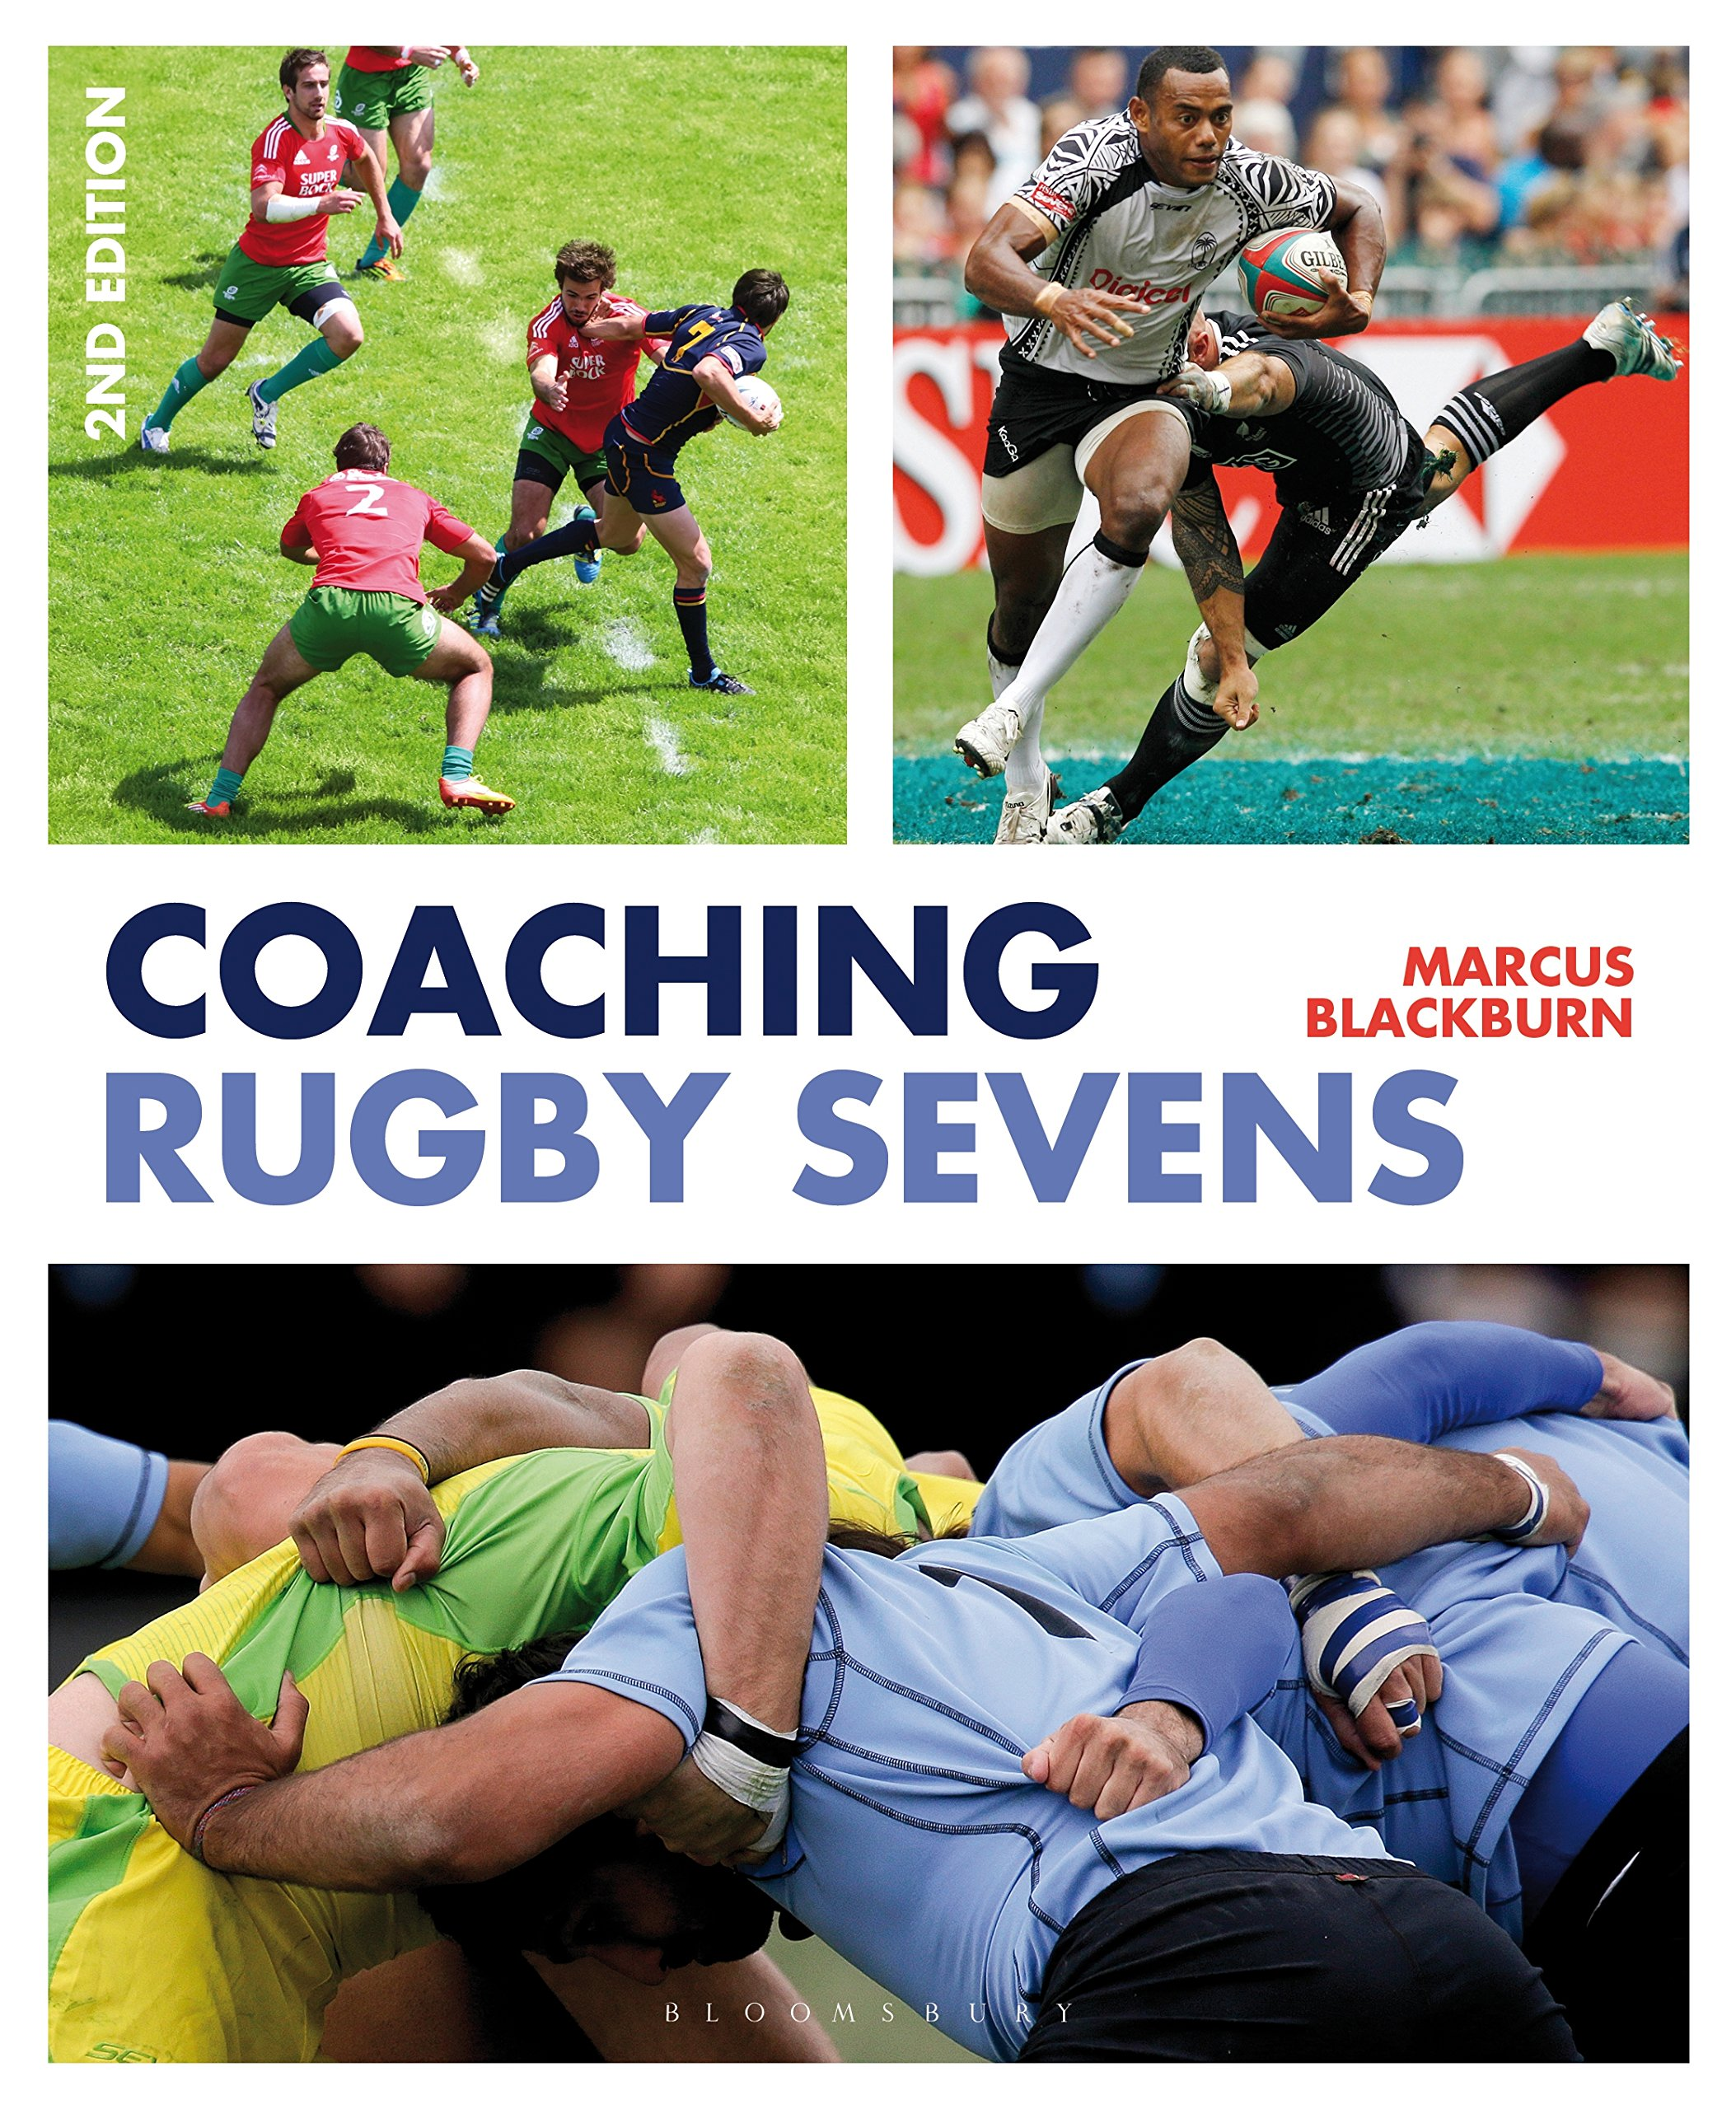 Image OfCoaching Rugby Sevens (English Edition)